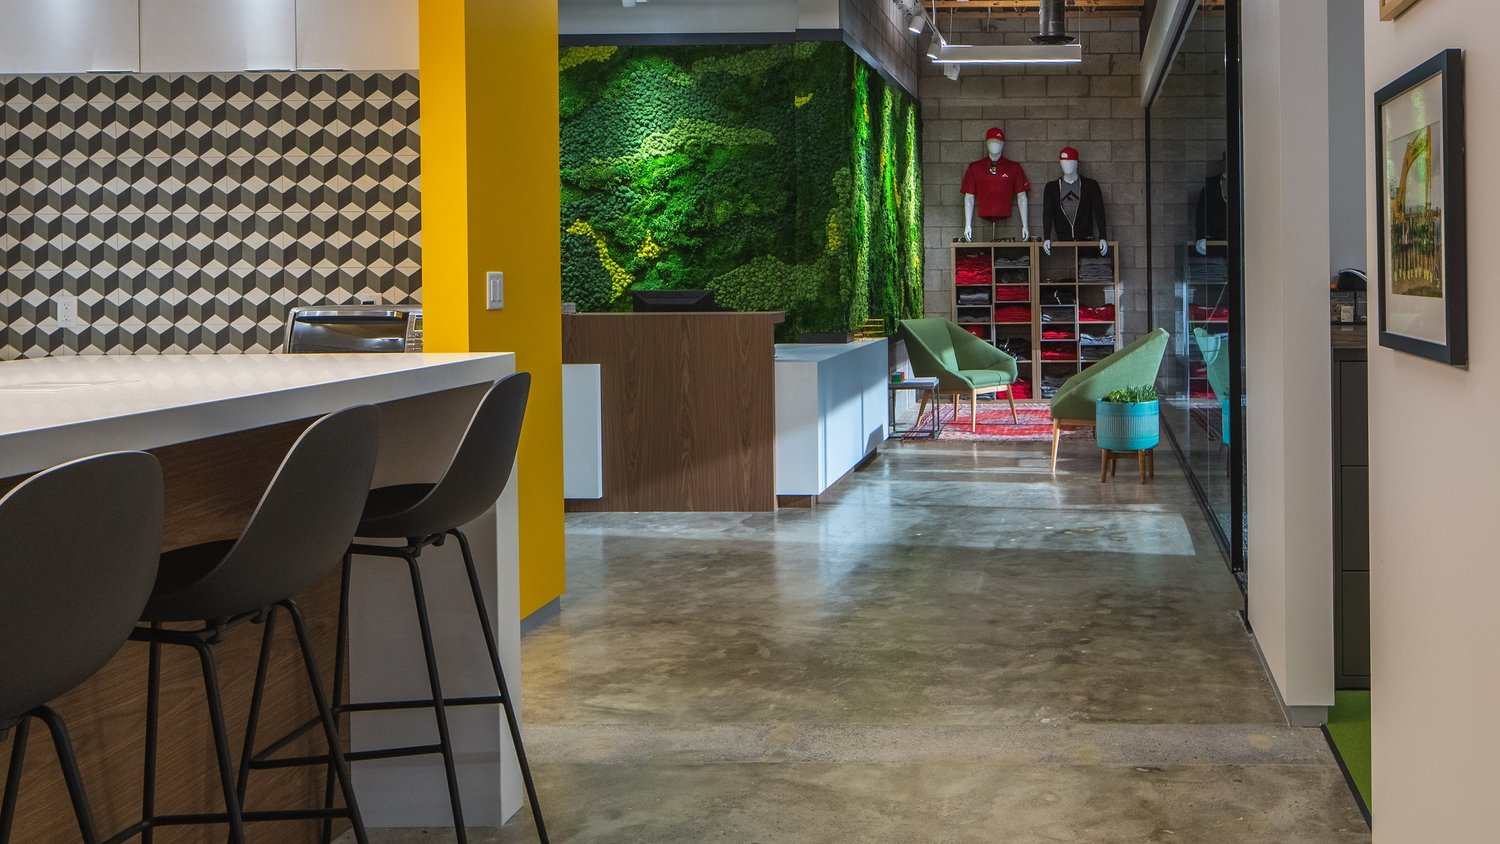 Contact Source Creative Office Interiors